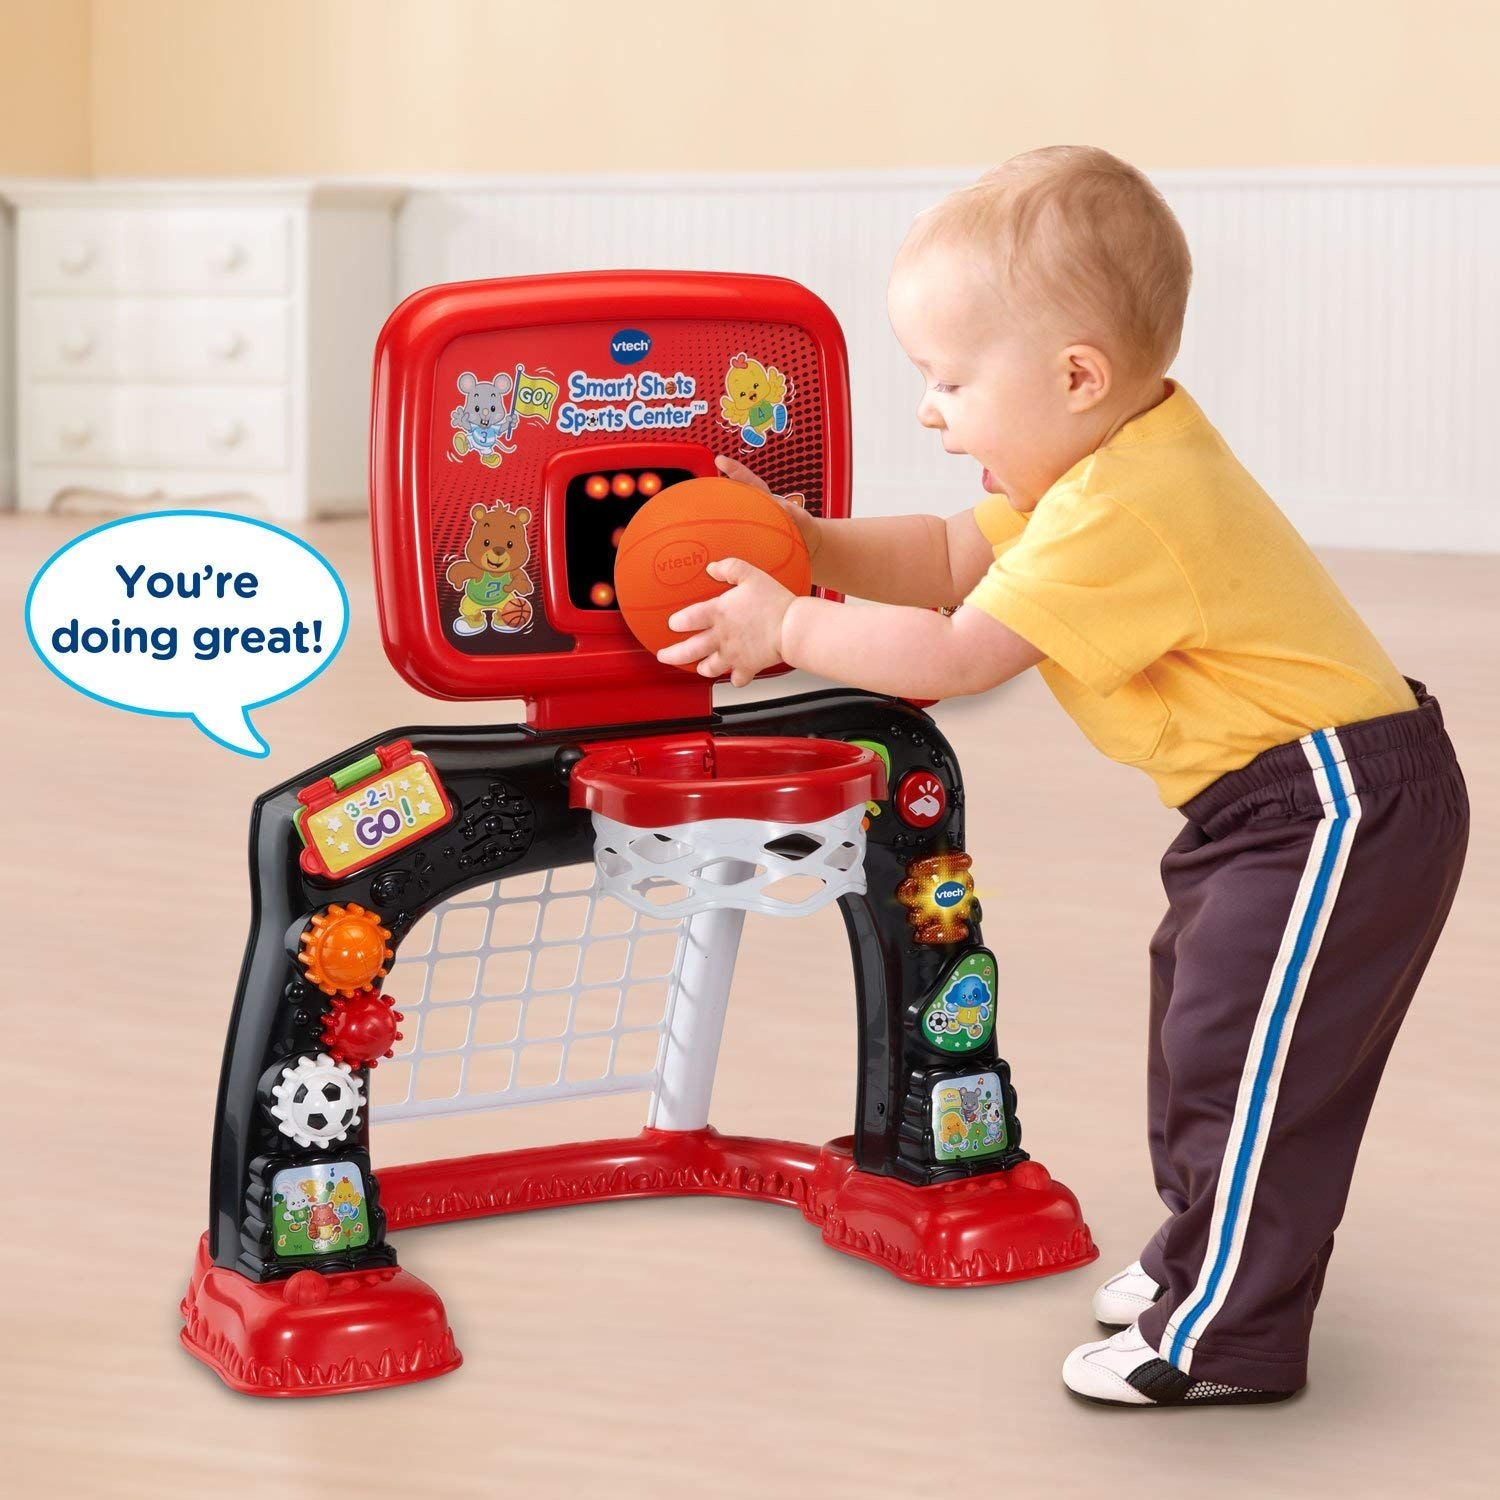 Christmas Gift for Baby, Smart Shots Sports Center, Red 2